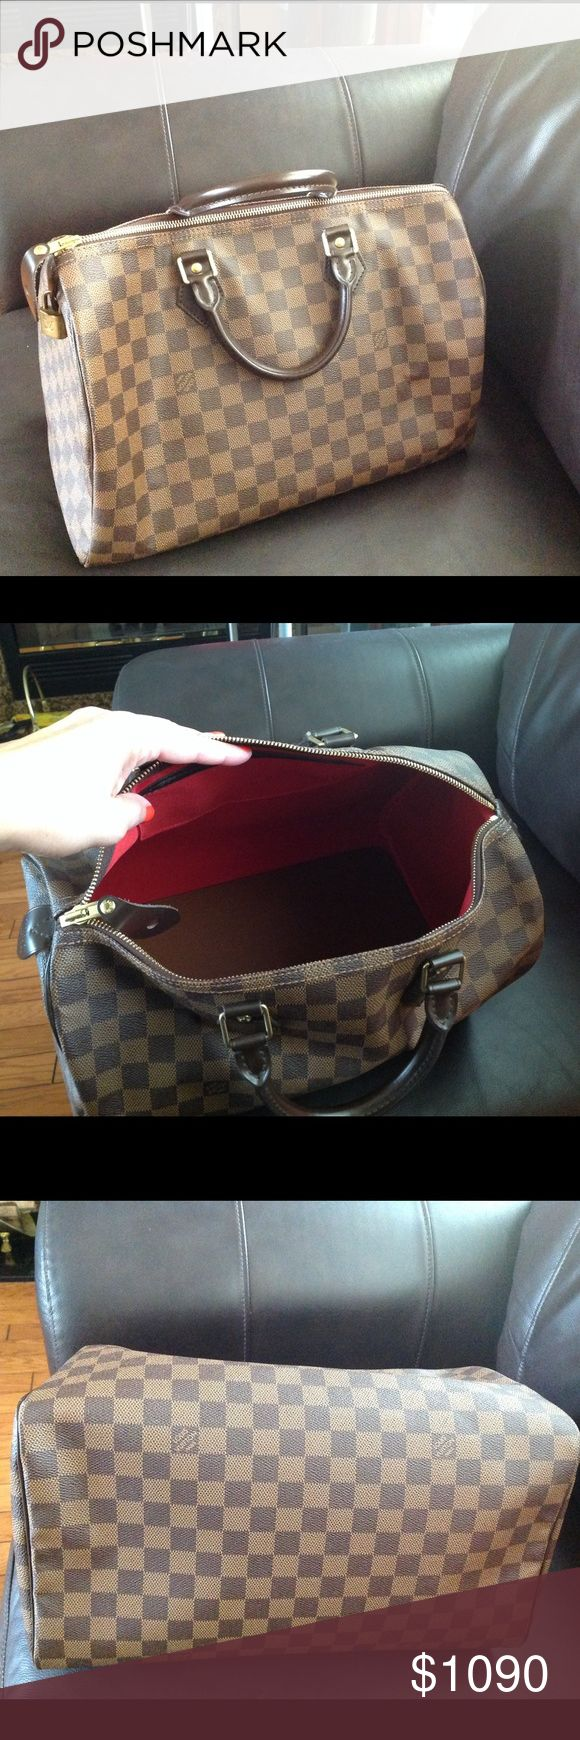 HP!100% Authentic Louis Vuitton Speedy 40 100% Authentic Damier speedy 40 *base shaper is included* adds form to your Louis Vuitton bag by creating a solid and lightweight base for your speedy 40. *lock & key is included* *dust bag & box is included* Louis Vuitton Bags